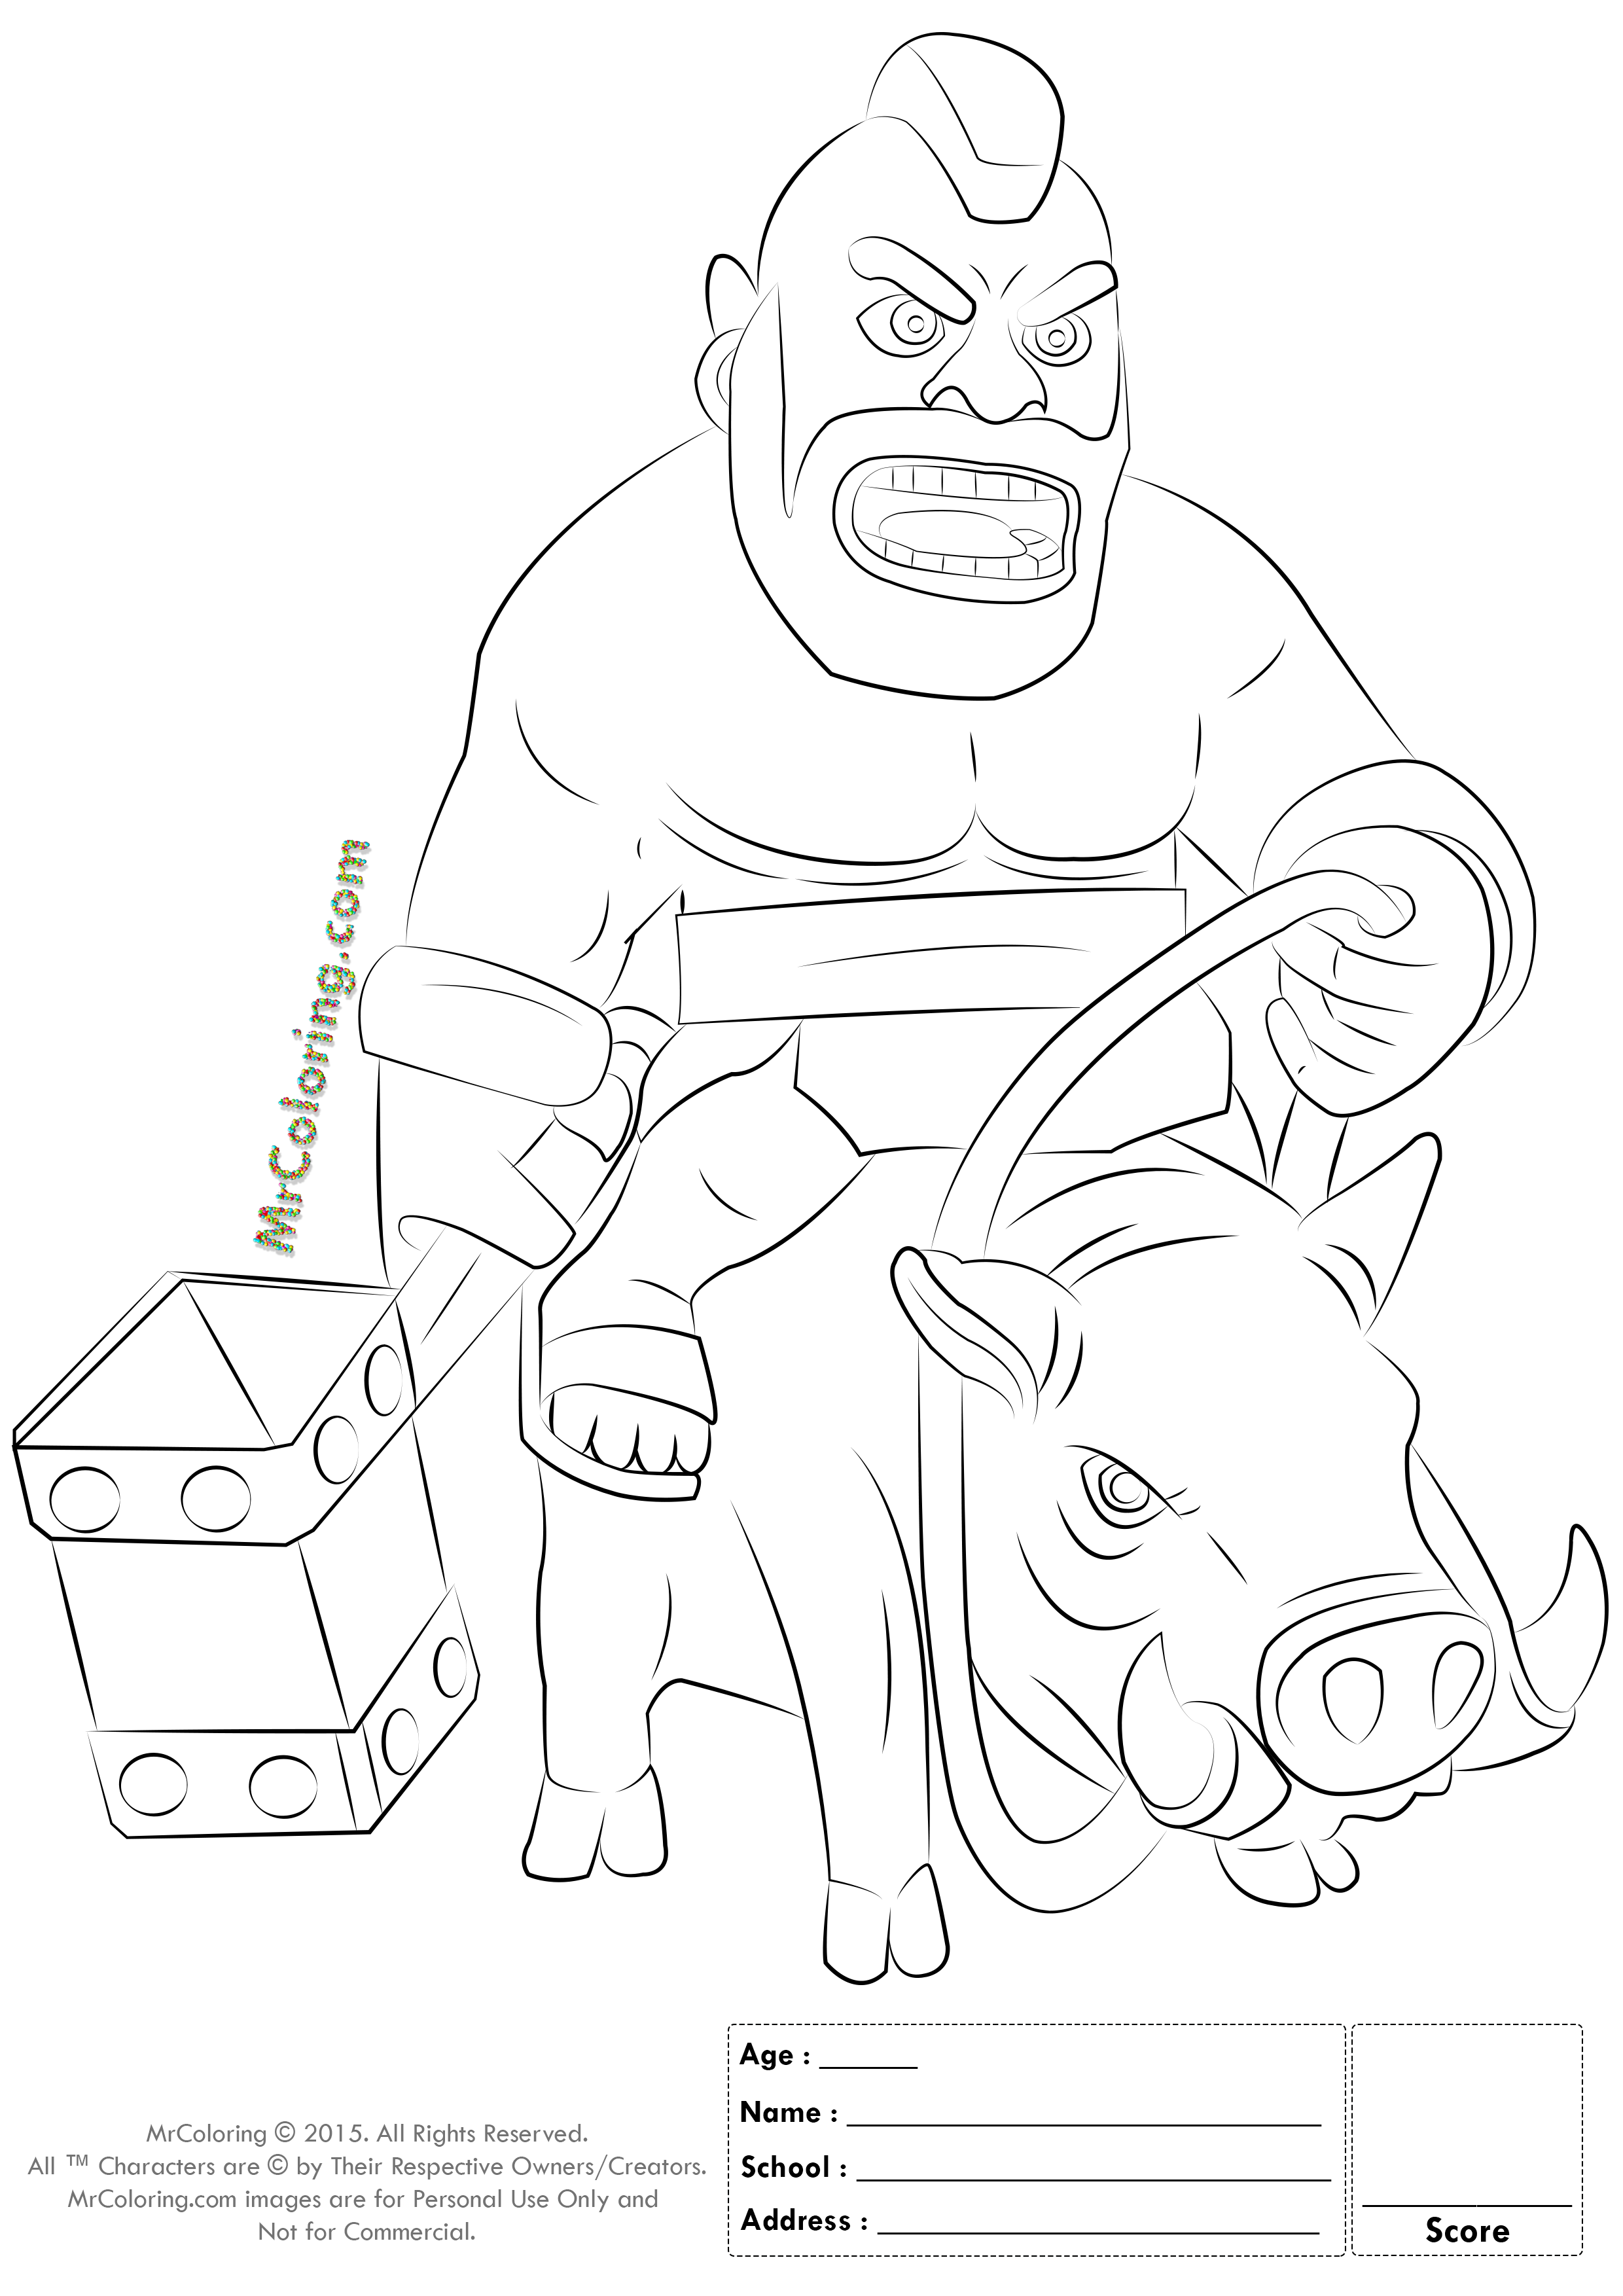 Clash Of Clans Hog Rider Coloring Clash Of Clans Pinterest